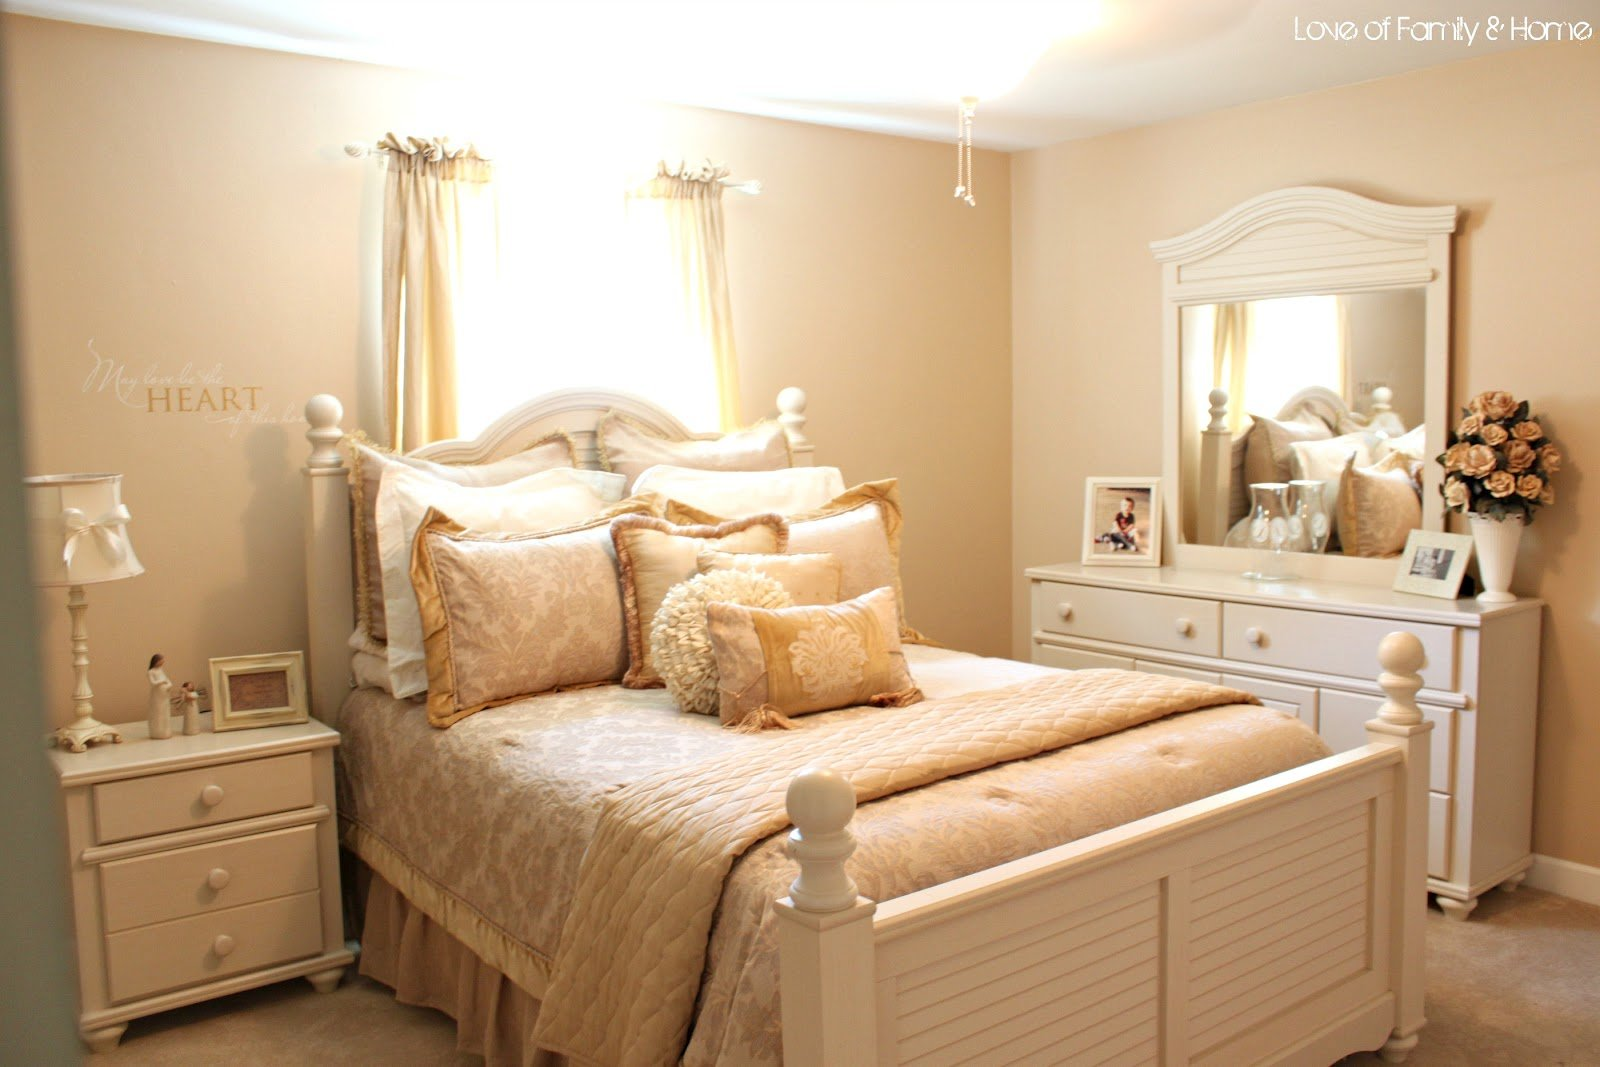 Best 10 Cottage Style Bedrooms Makeover Inspiration Love Of With Pictures